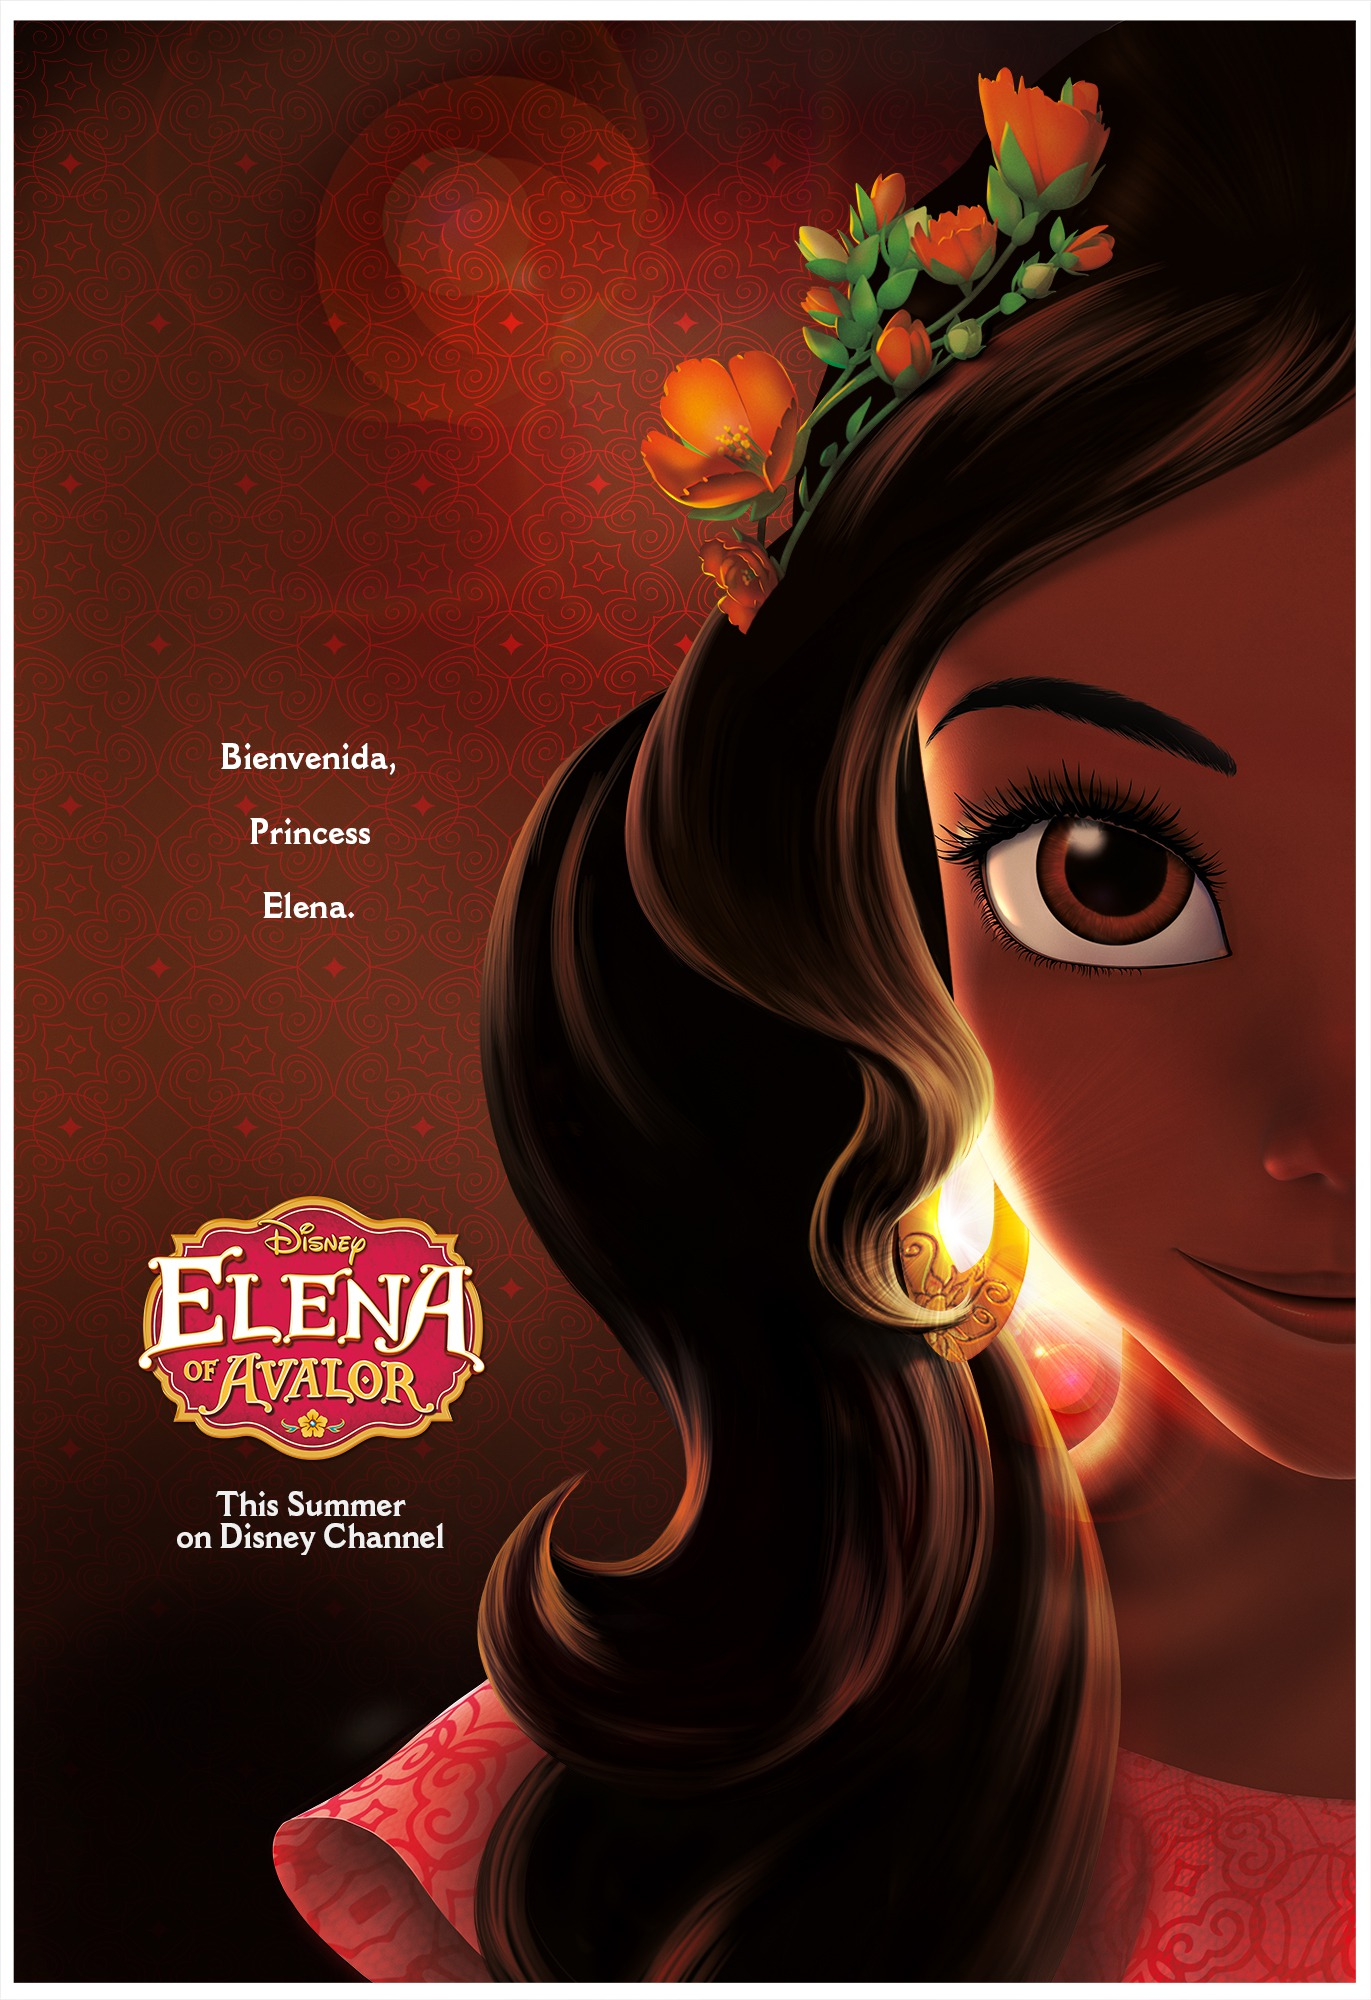 disney channel elena avalor affiche poster